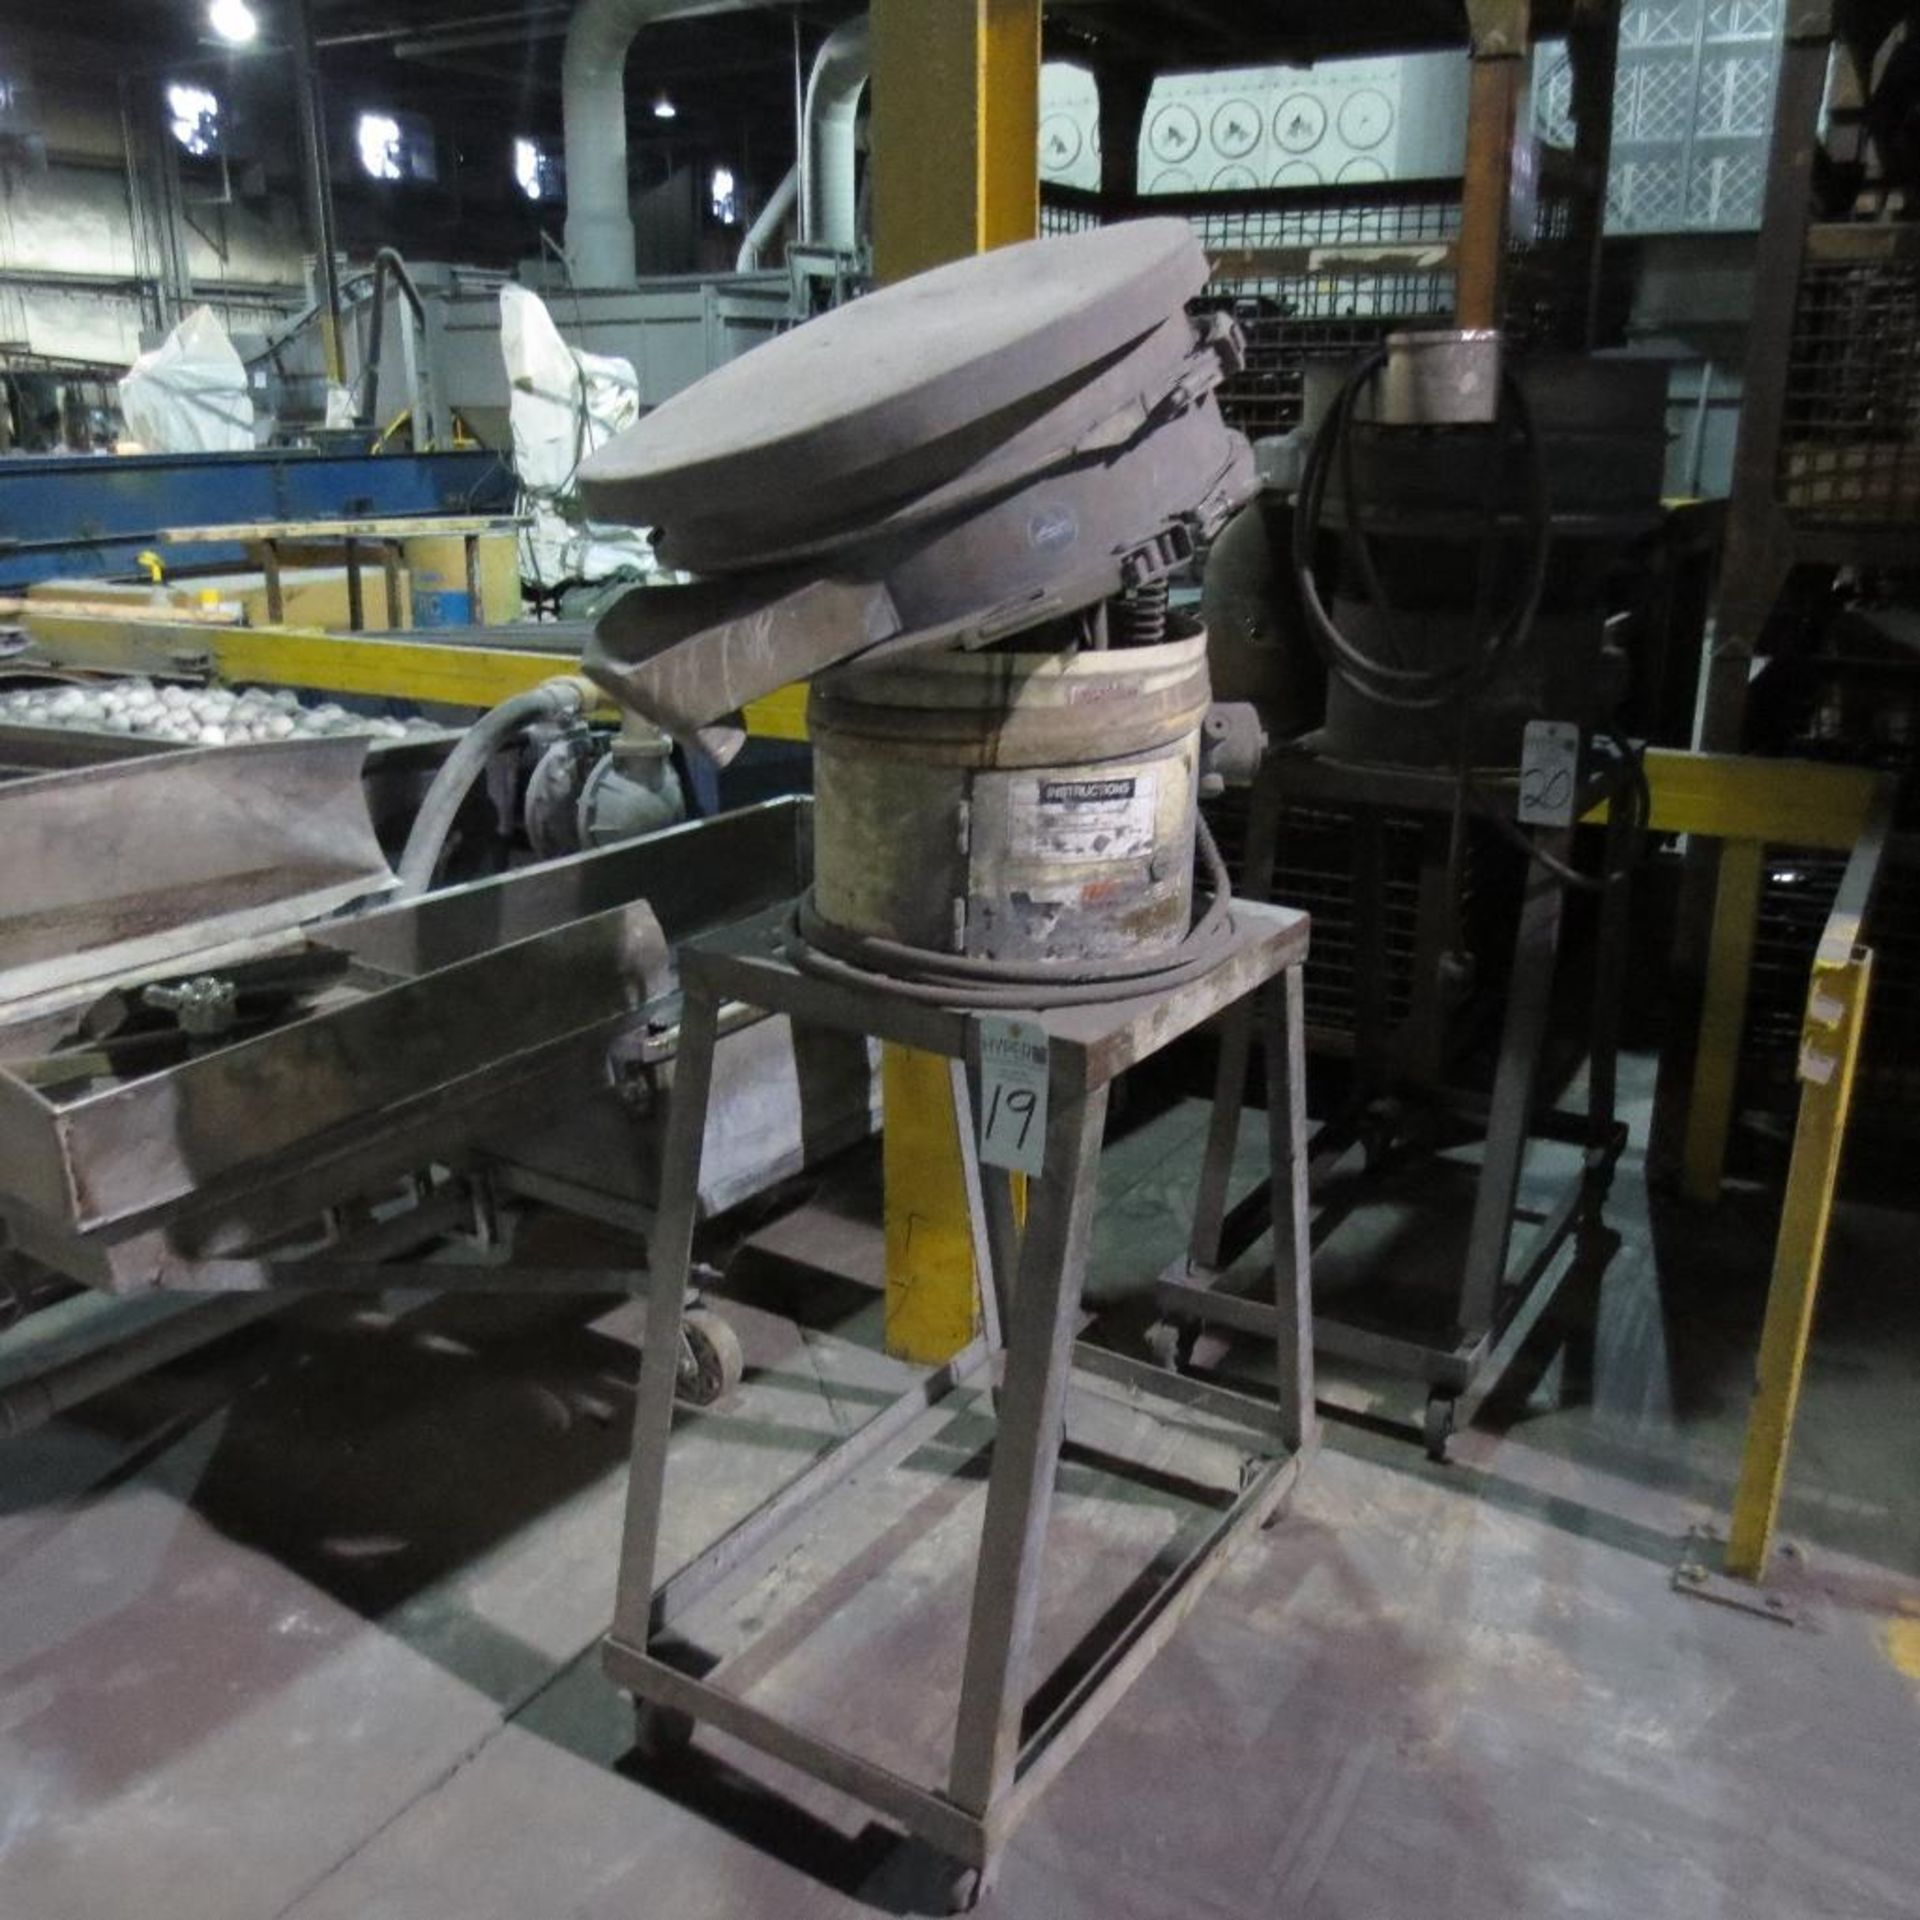 Lot 19 - Sweco Model ZS24544 Vibratory Bowl, 1200 RPM, 440V, 3 Ph, Apx 2' open Top